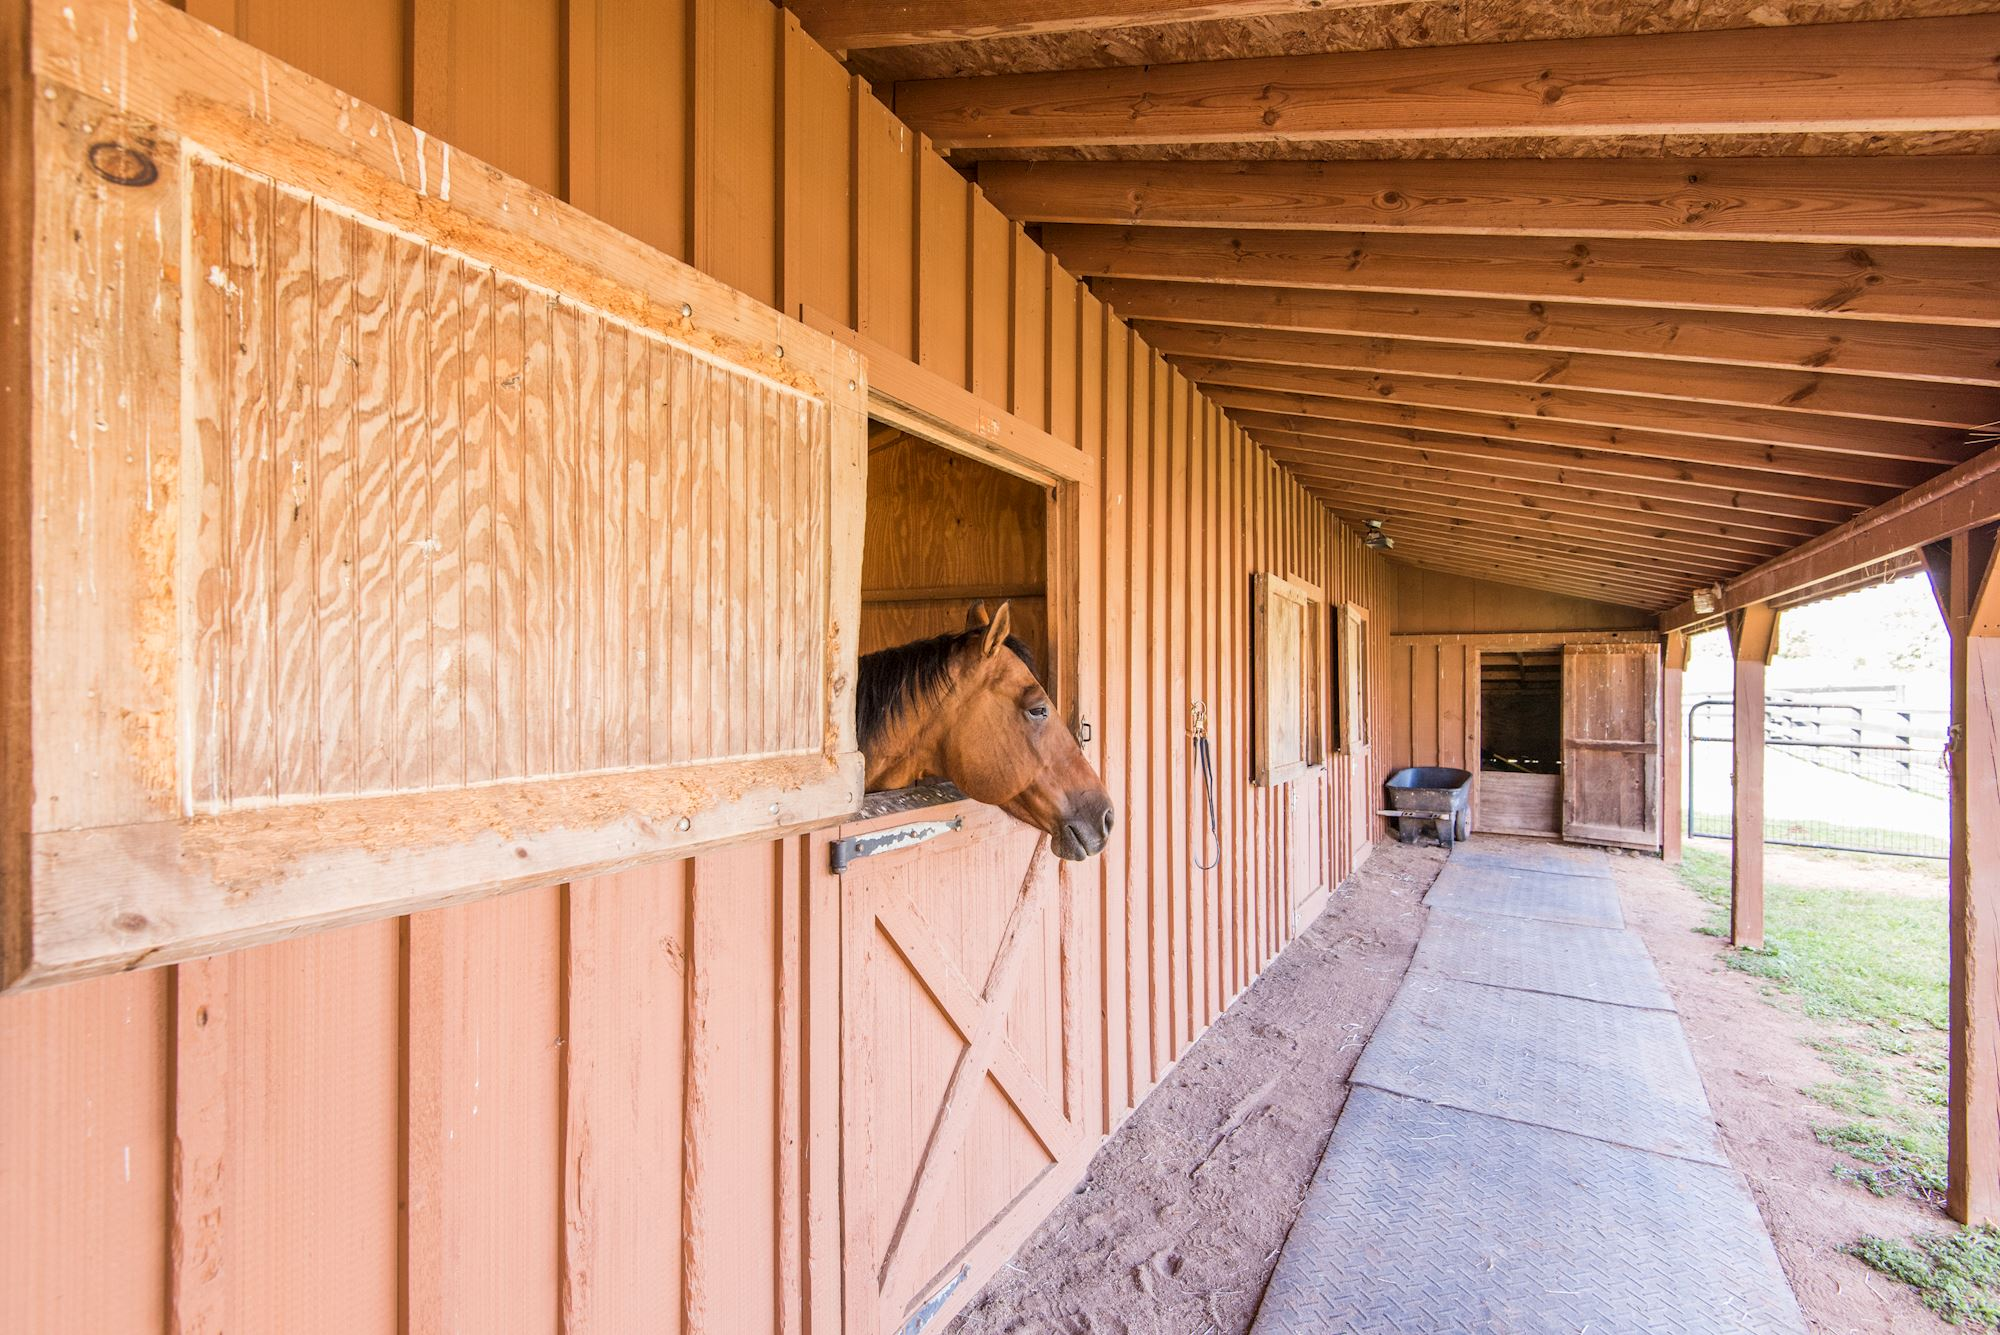 4 Stall Horse Barn With Heated Tack Room U0026 Addu0027l Storage